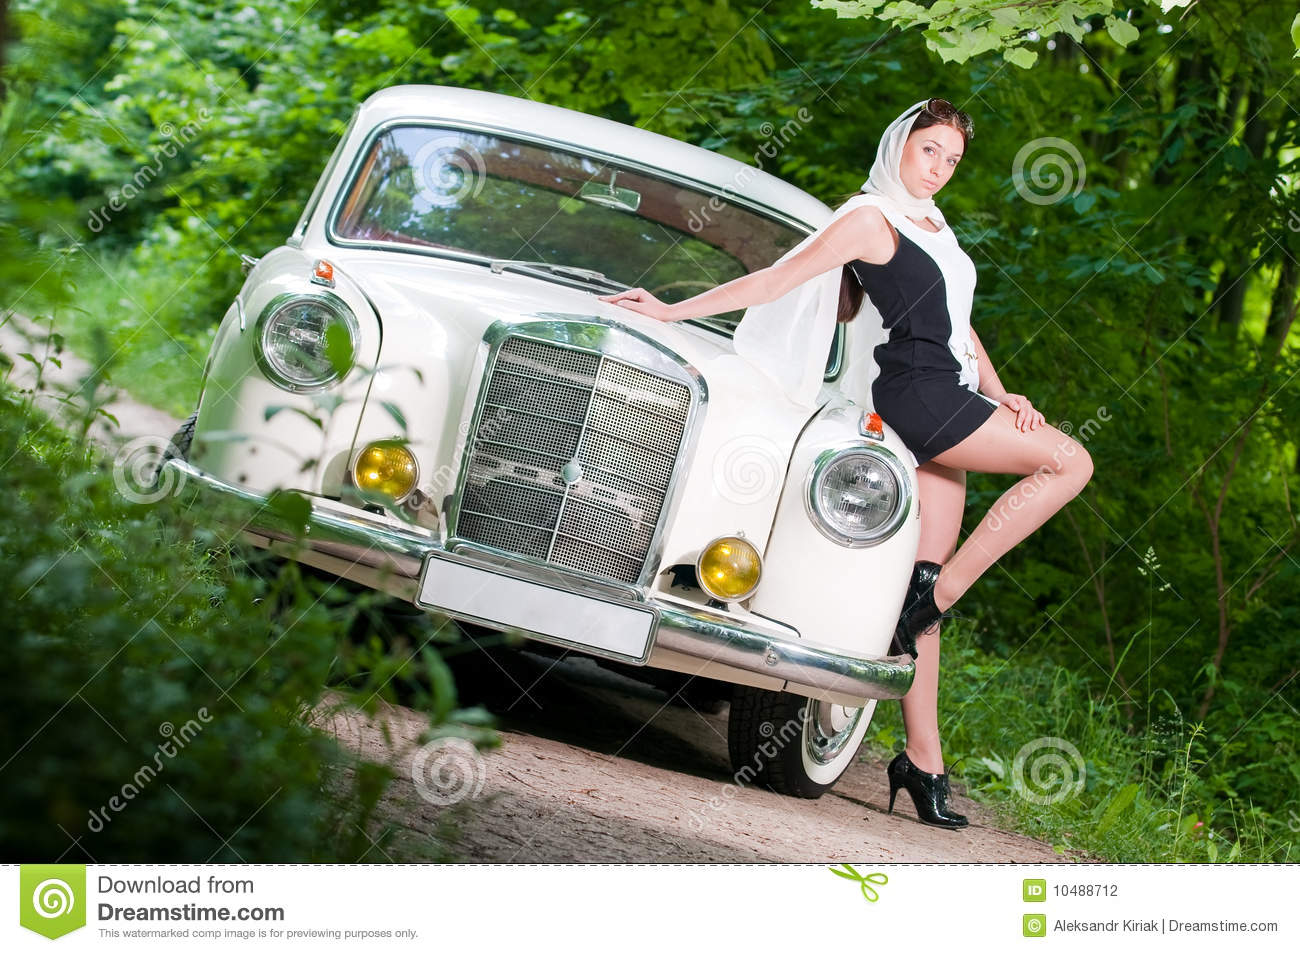 pin up girl car naked